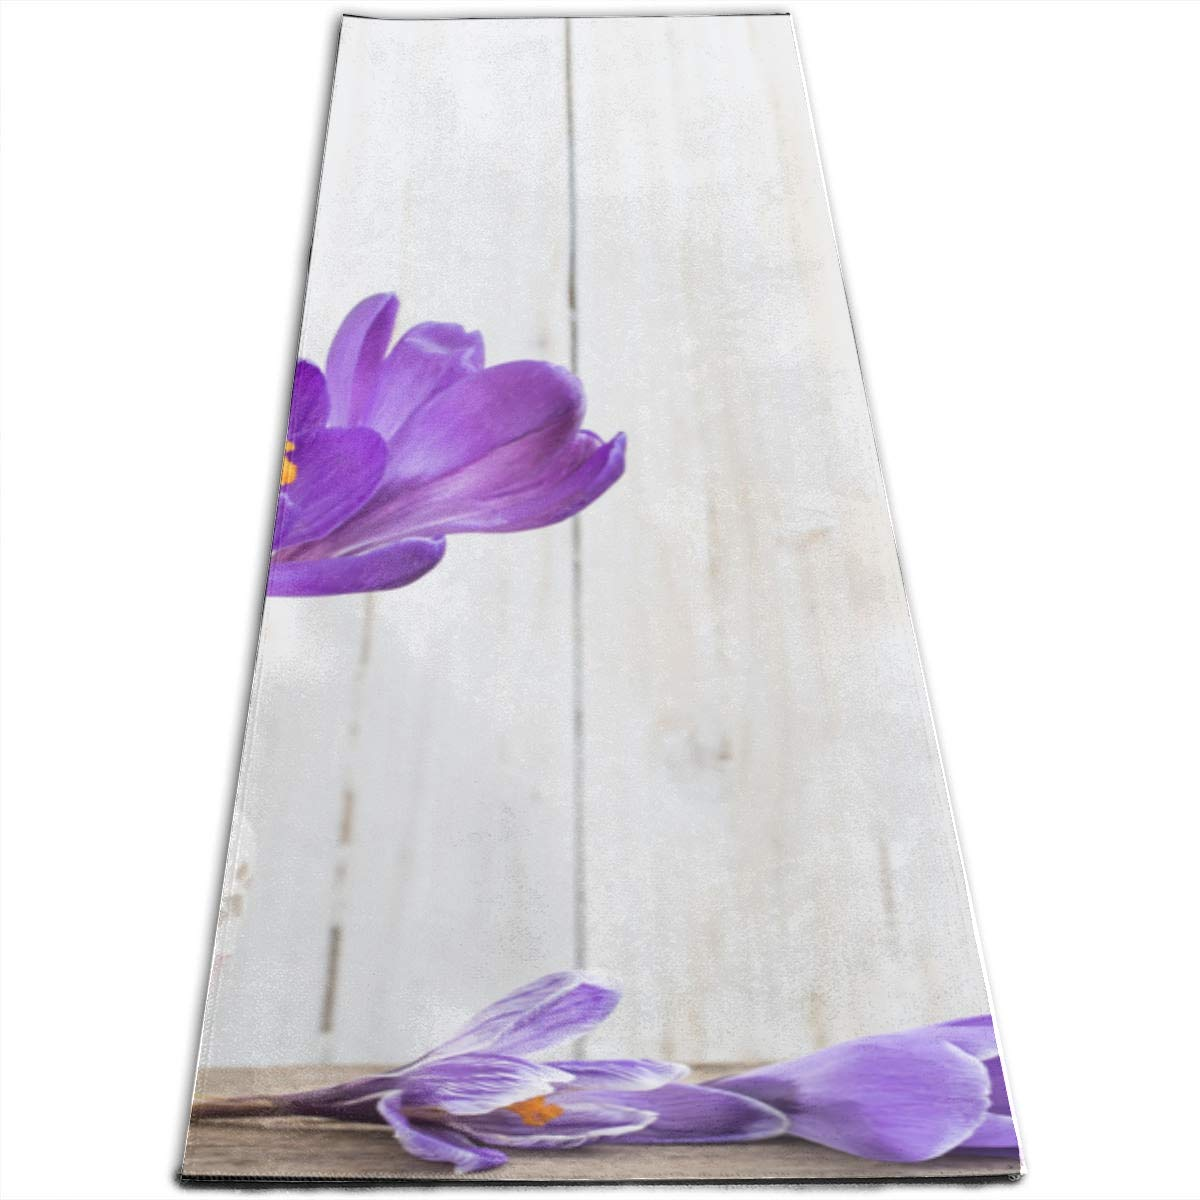 Amazon.com: GGKDL Exercise Yoga Mat Spring Flowers Vase On ...